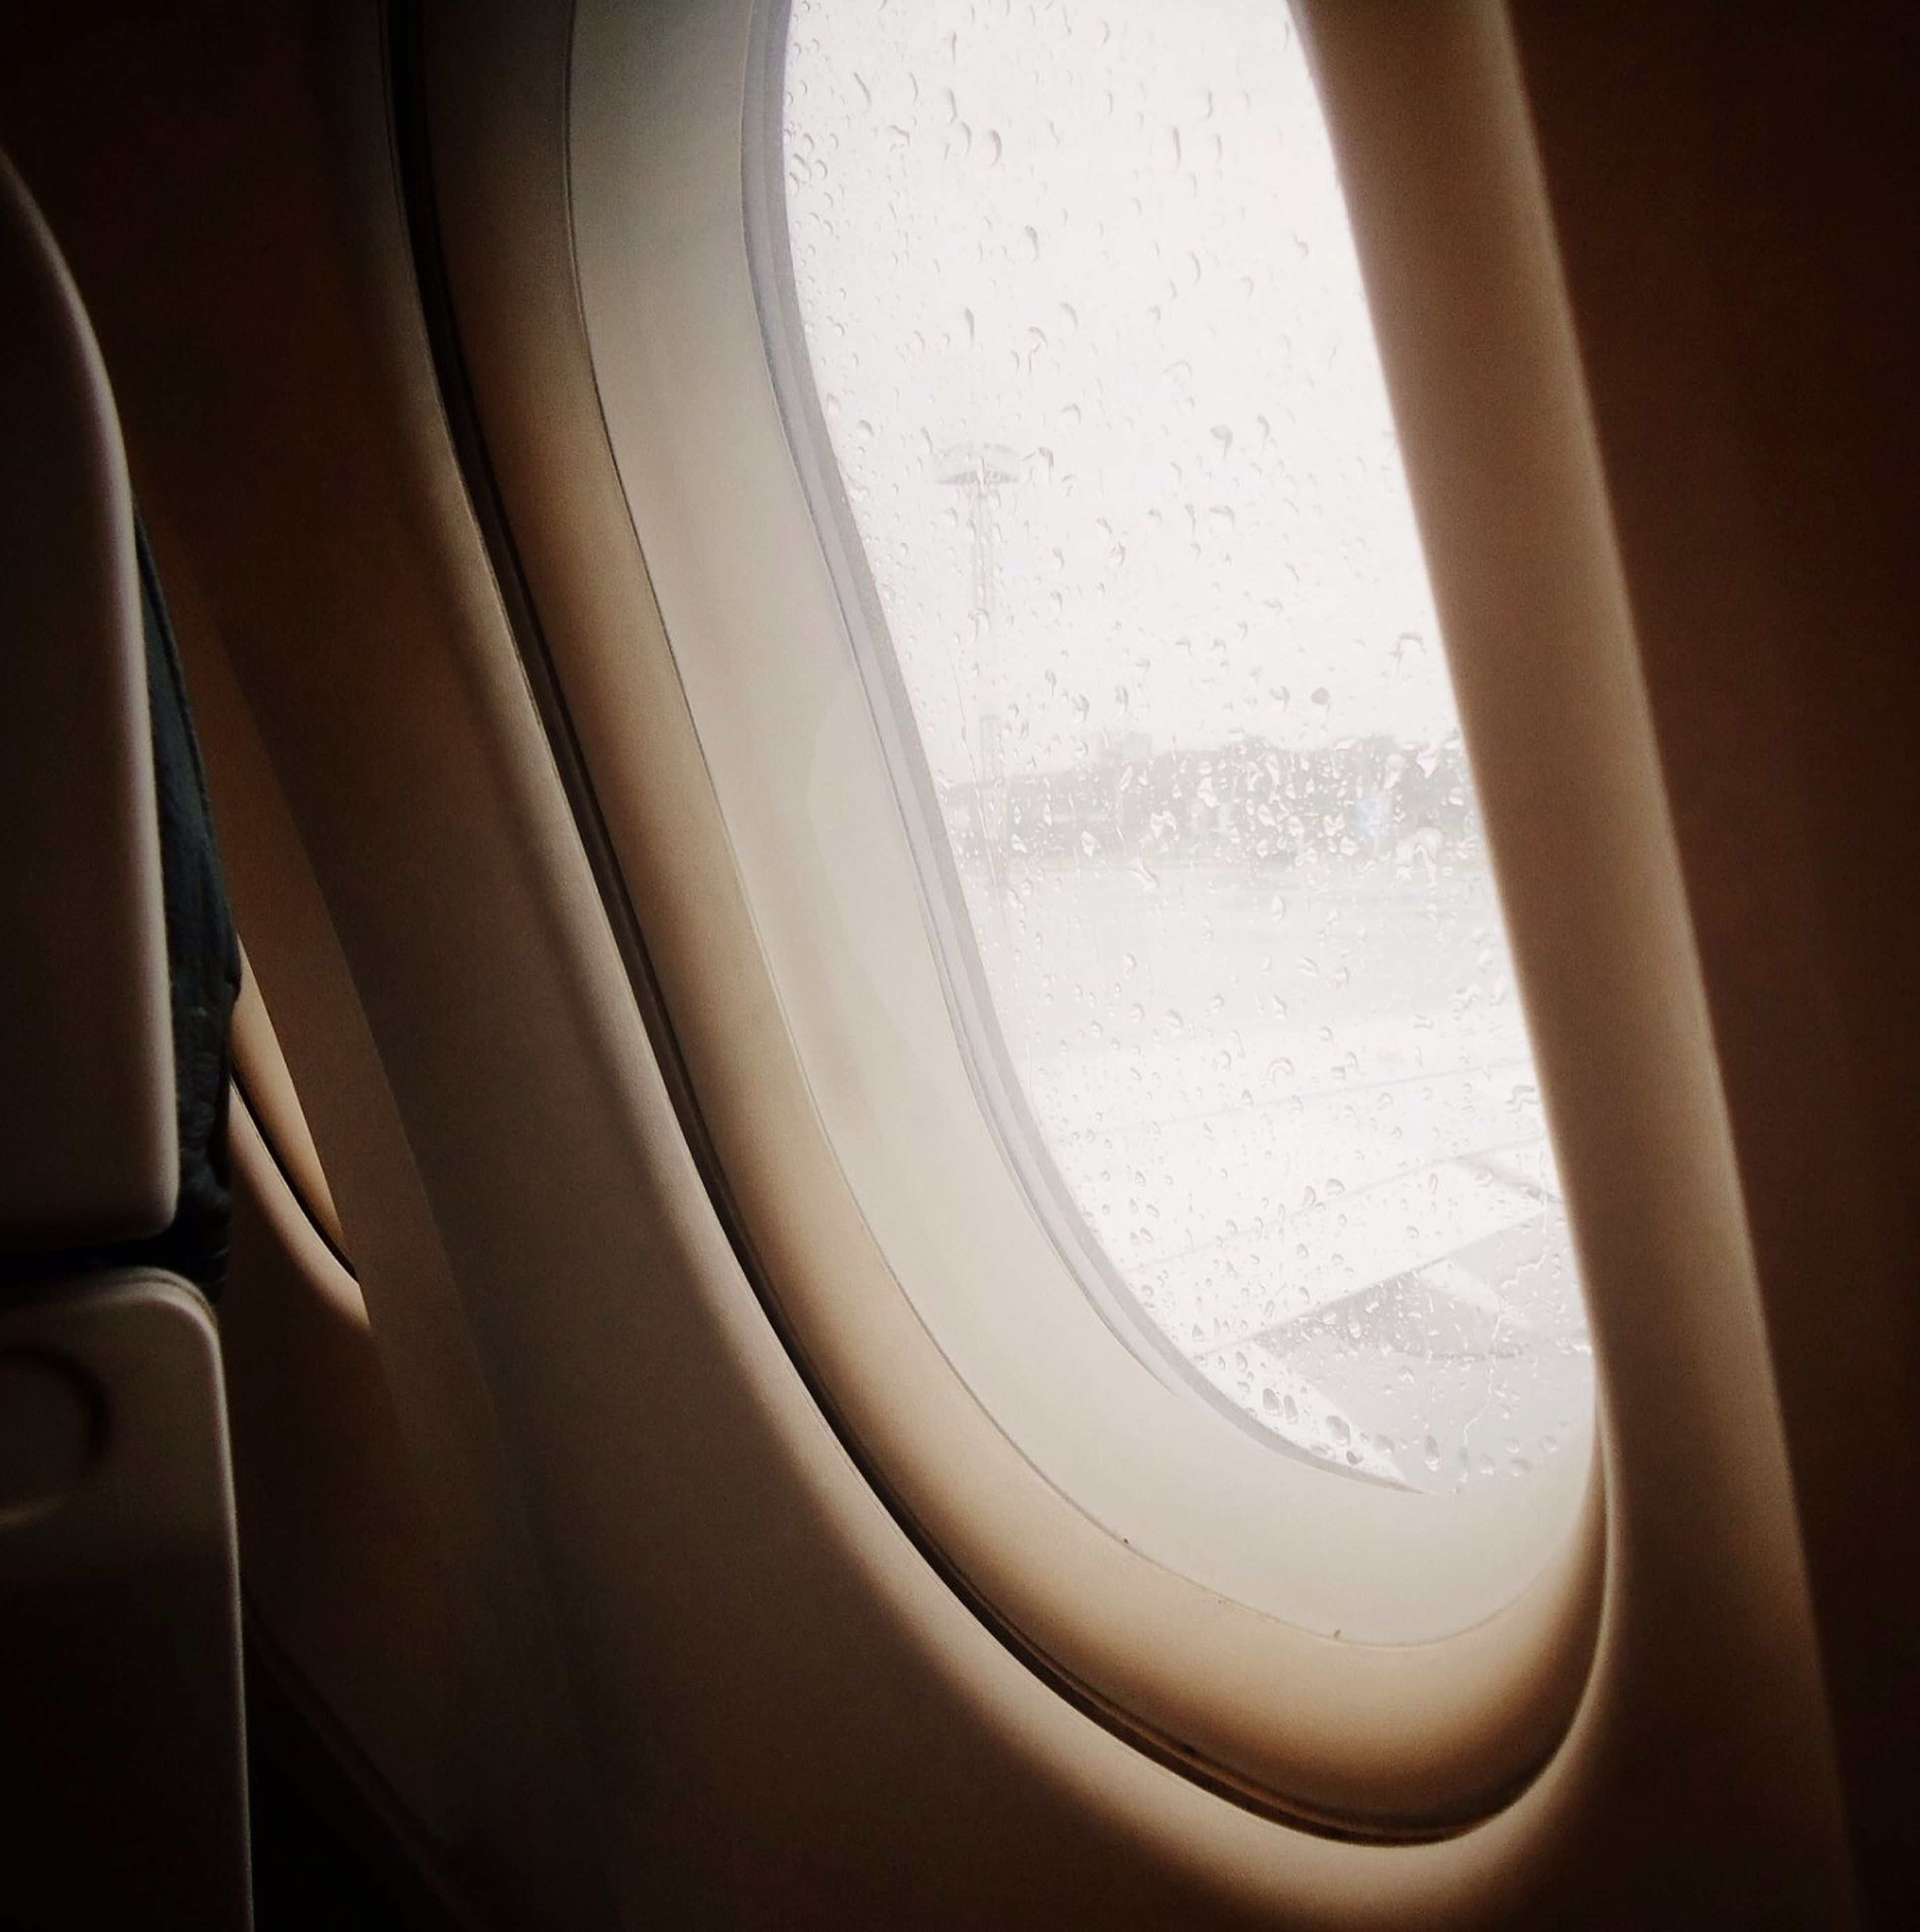 indoors, close-up, transportation, window, mode of transport, part of, full frame, high angle view, vehicle interior, white color, glass - material, no people, airplane, backgrounds, transparent, car, detail, cropped, reflection, white